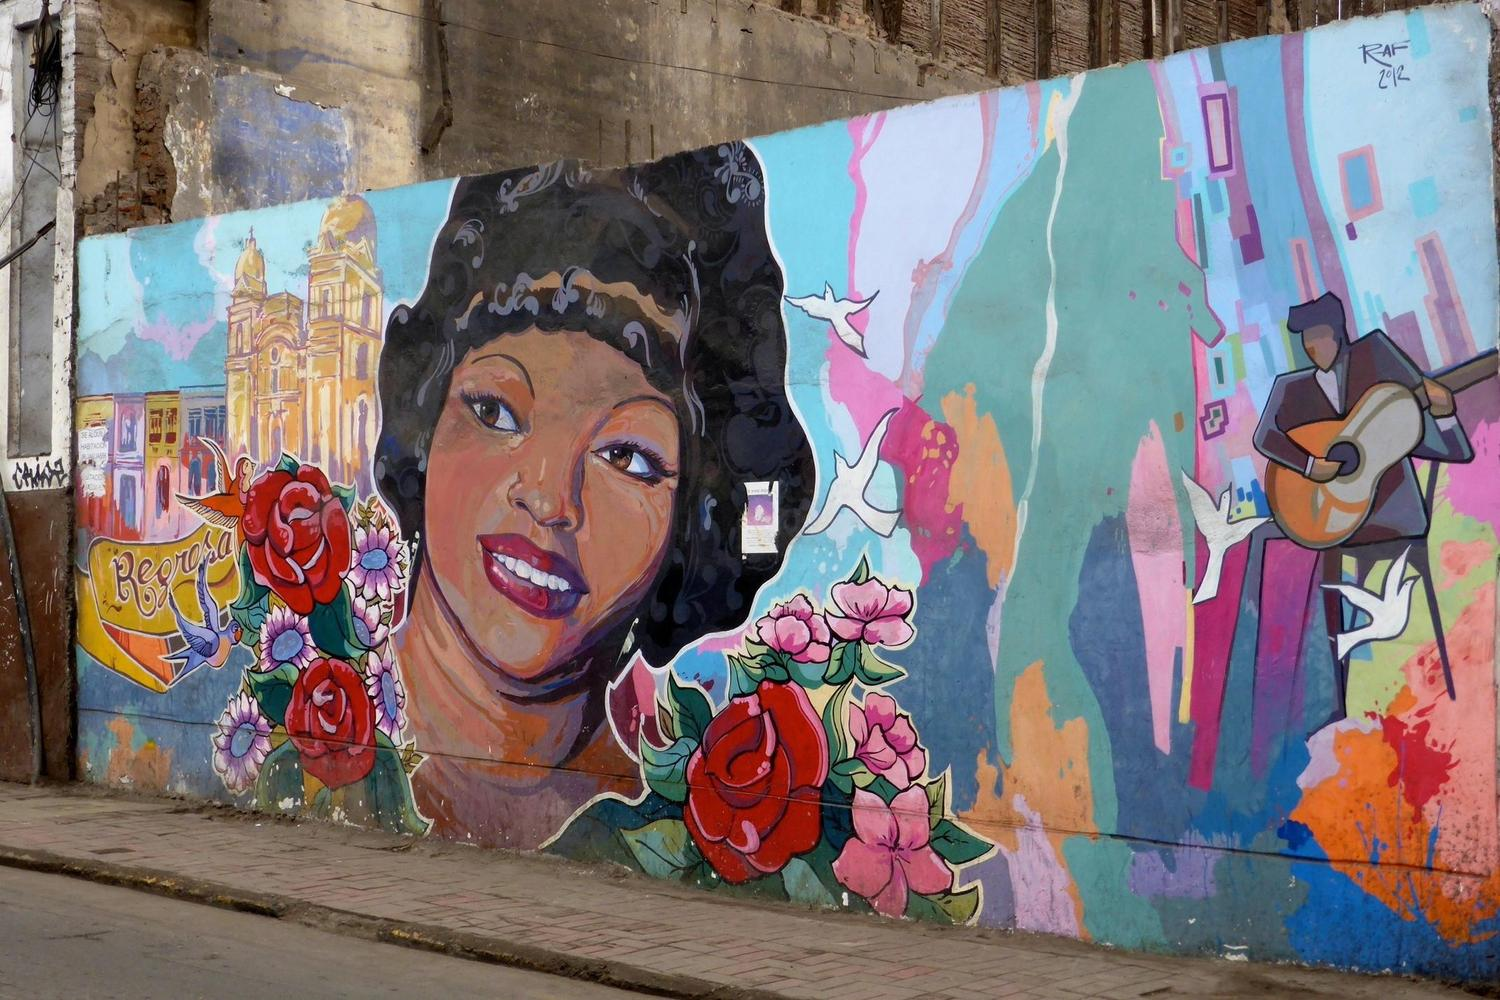 A street mural in Lima